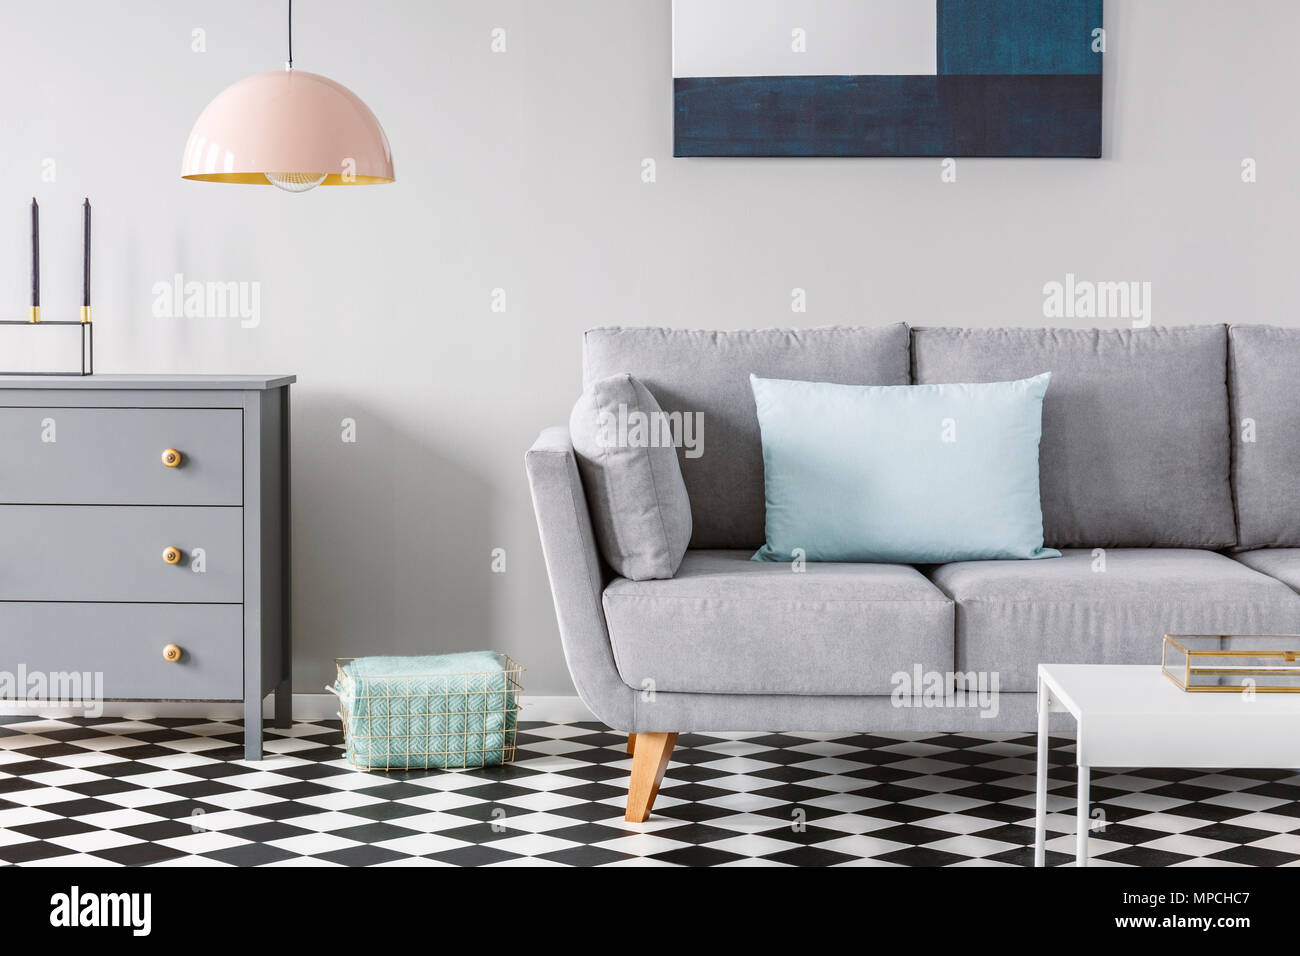 Pink Lamp Above Grey Cabinet Next To Sofa On Checkered Floor In Pastel  Living Room Interior. Real Photo